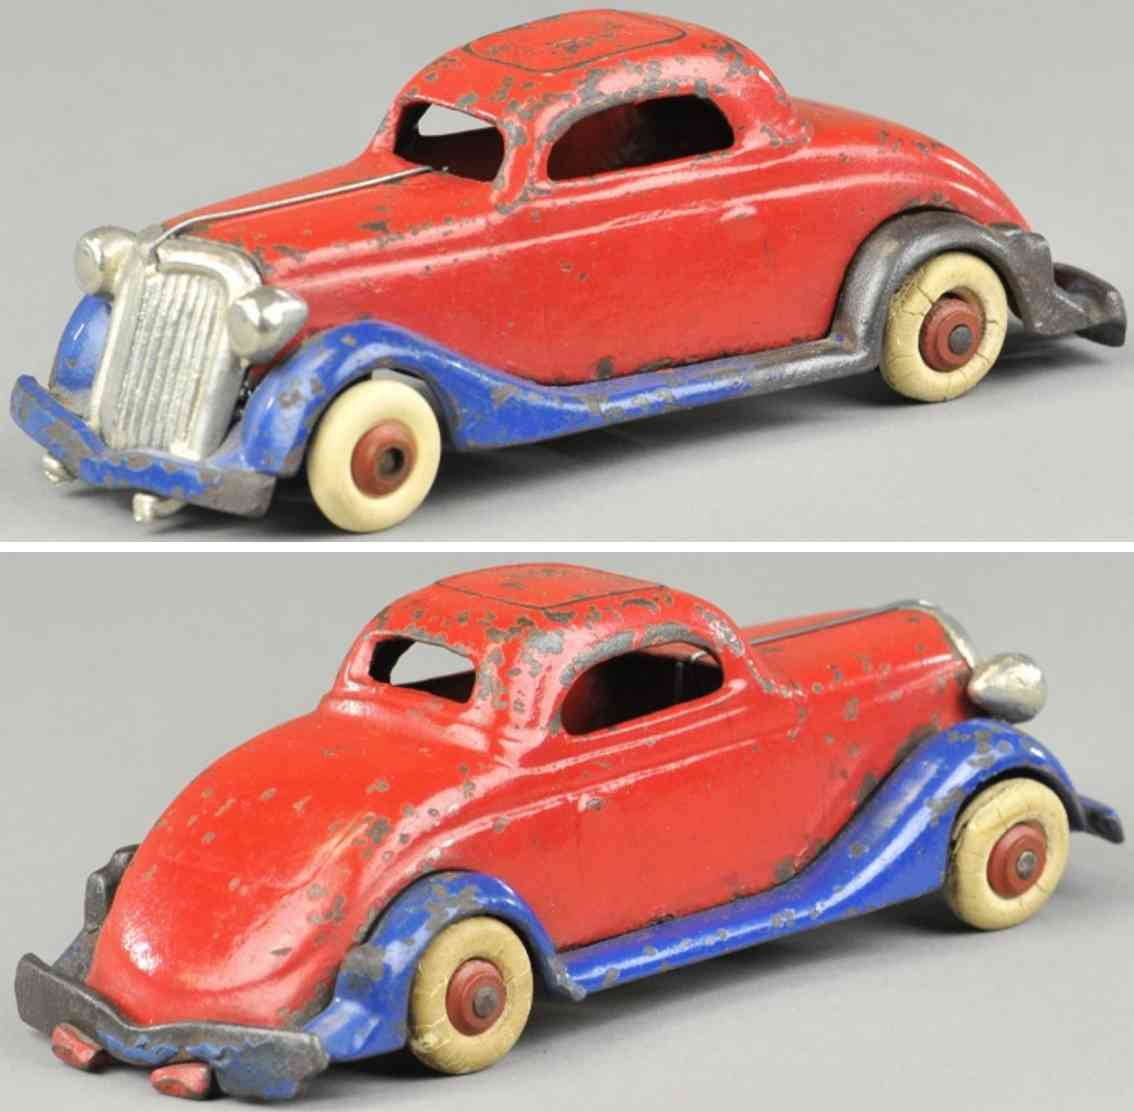 williams ac cast iron toy car coupe red blue